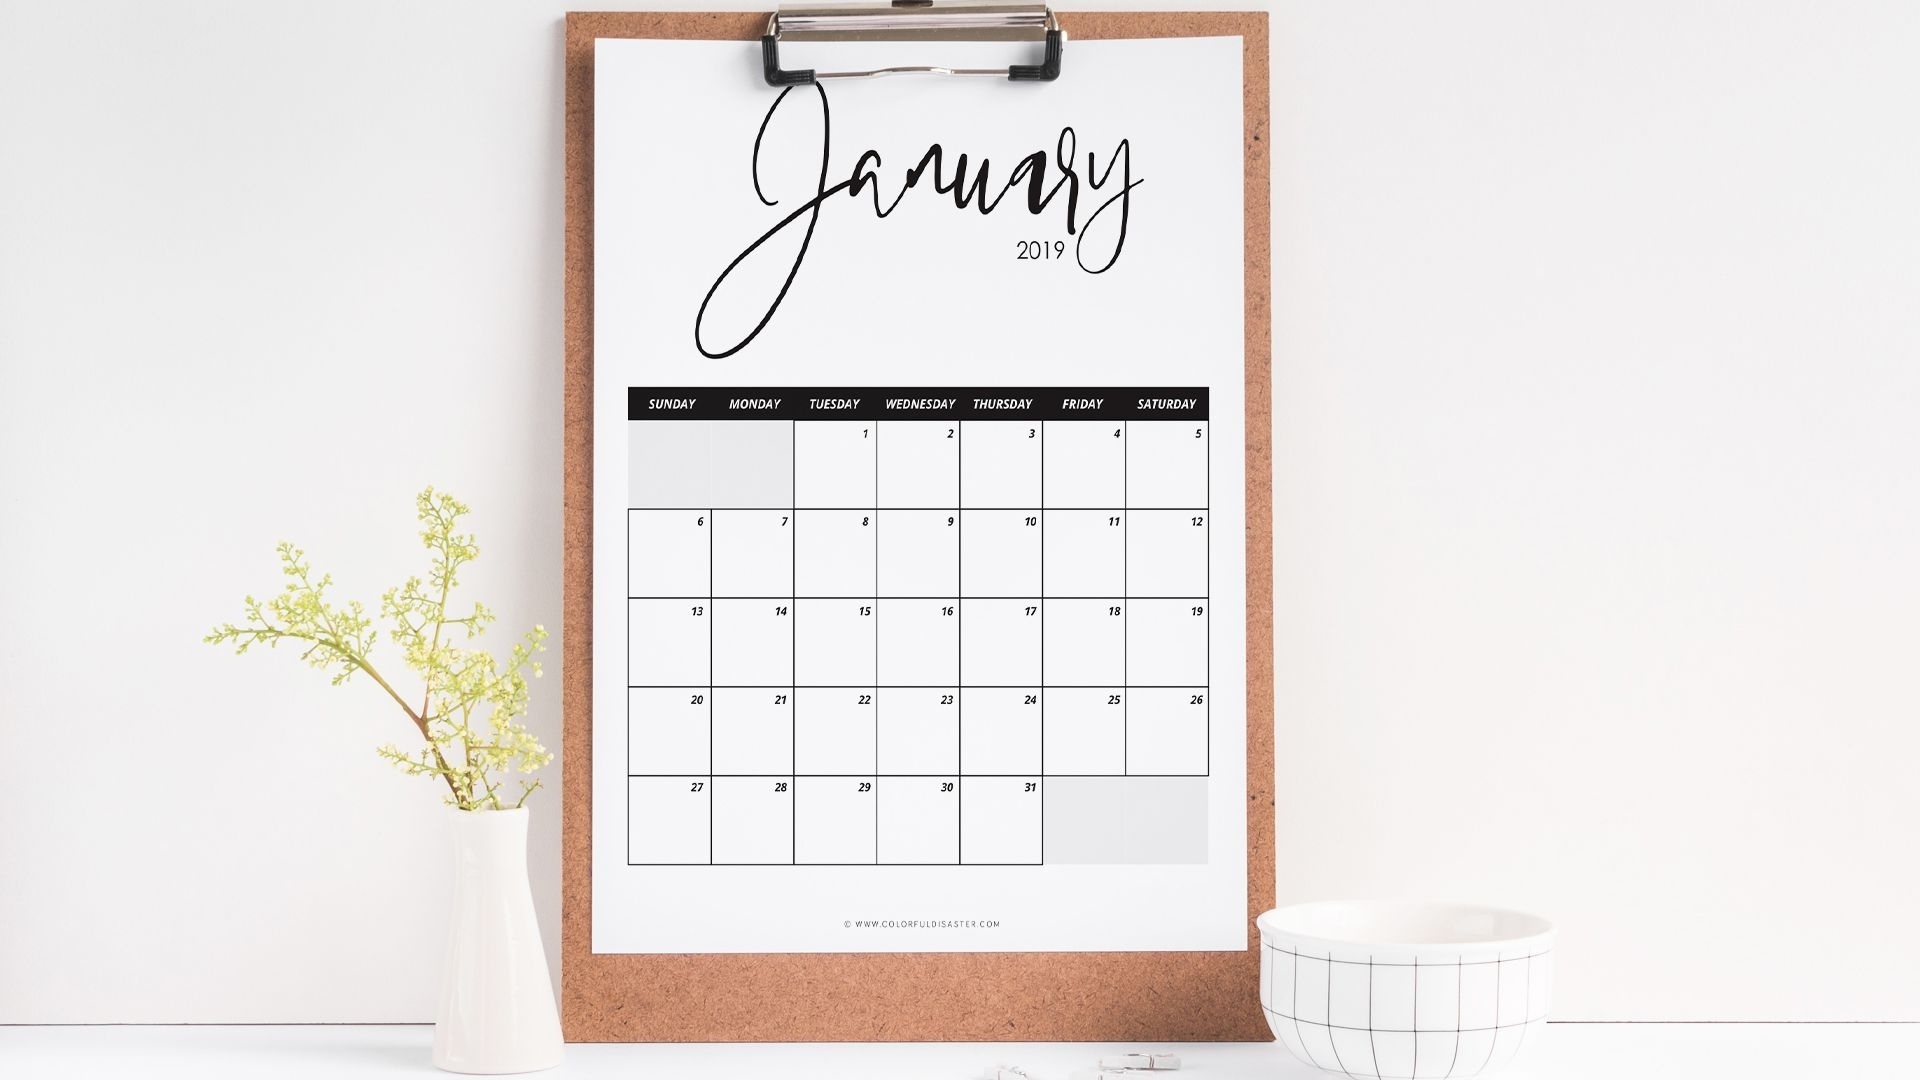 10 Stylish Free, Printable Calendars For 2019 Print At Home Calendar Templates